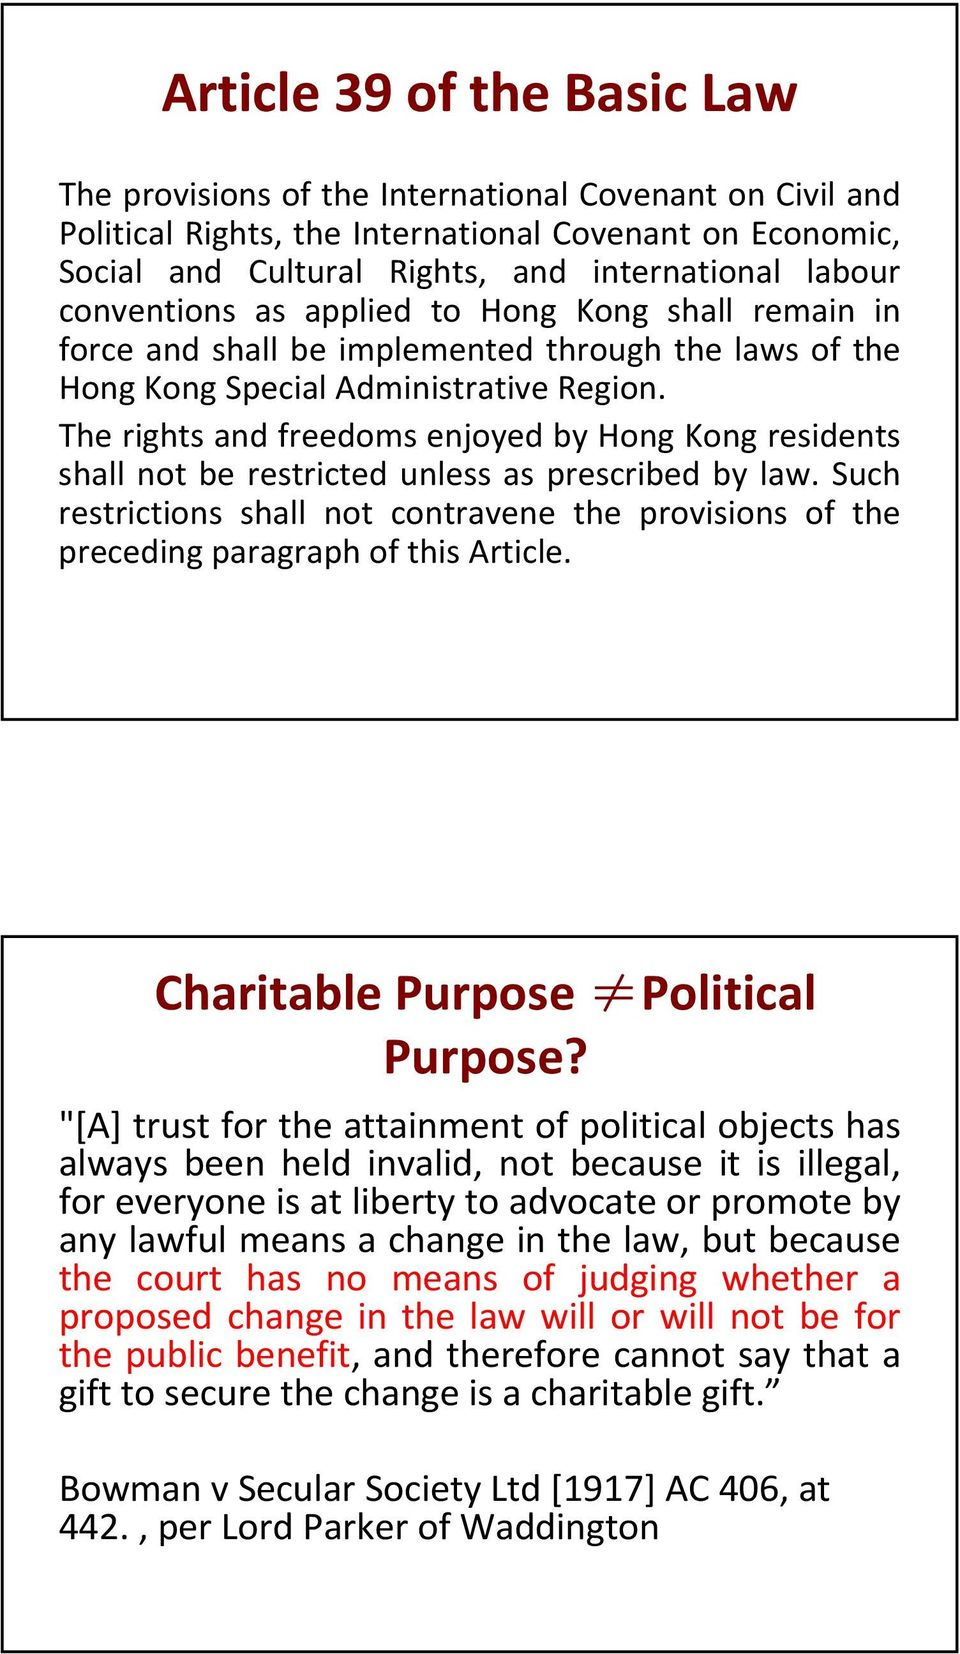 The rights and freedoms enjoyed by Hong Kong residents shall not be restricted unless as prescribed by law.